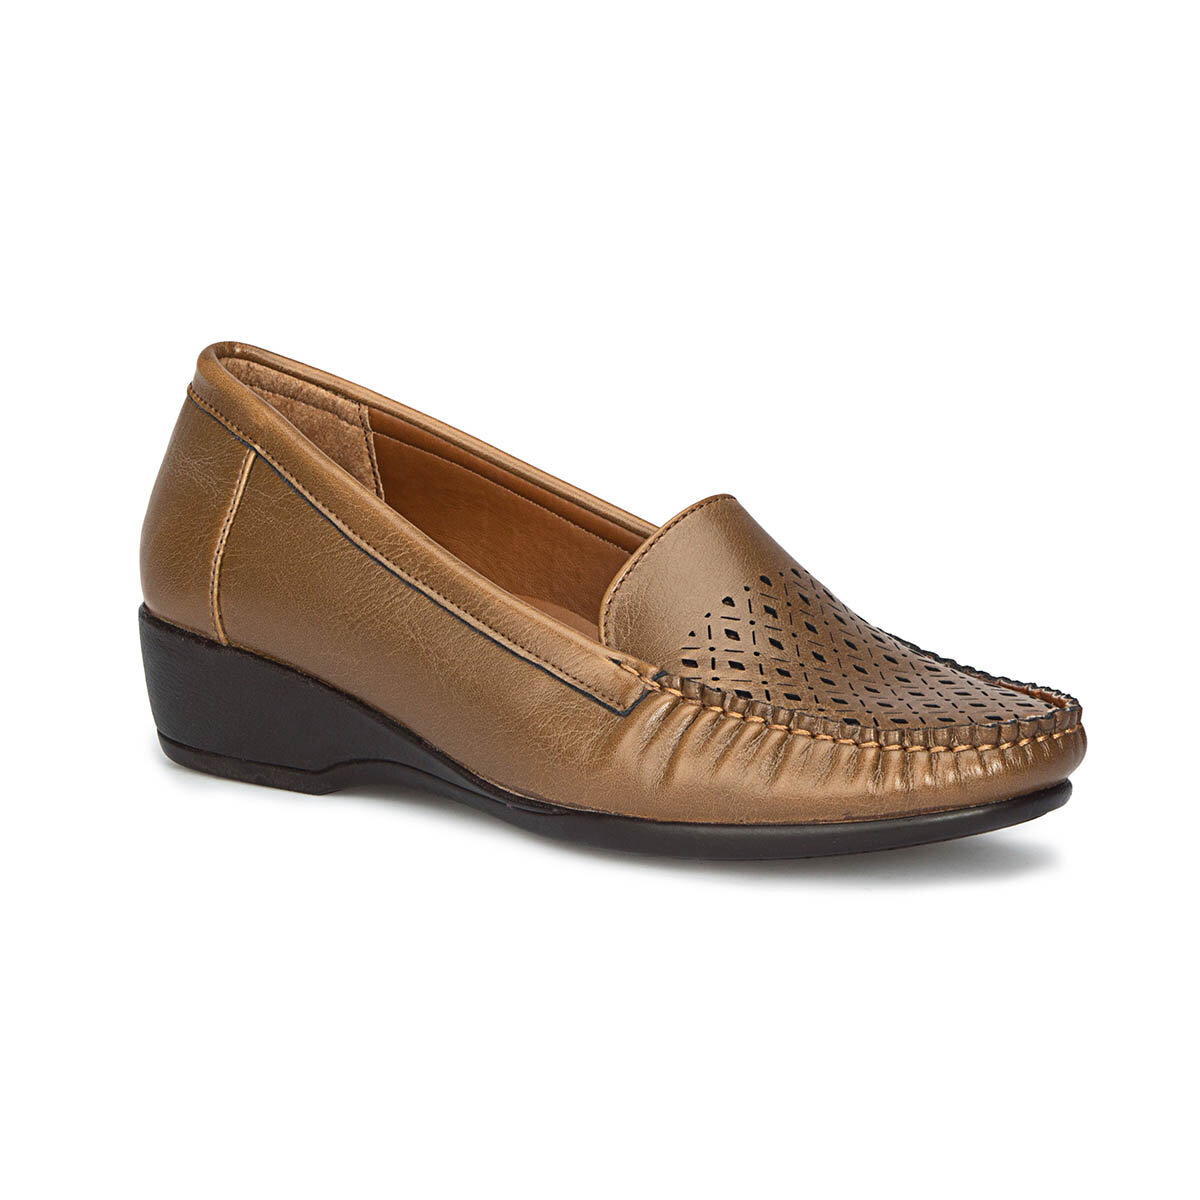 FLO 71. 157281.Z Tan Women Loafer Shoes Polaris